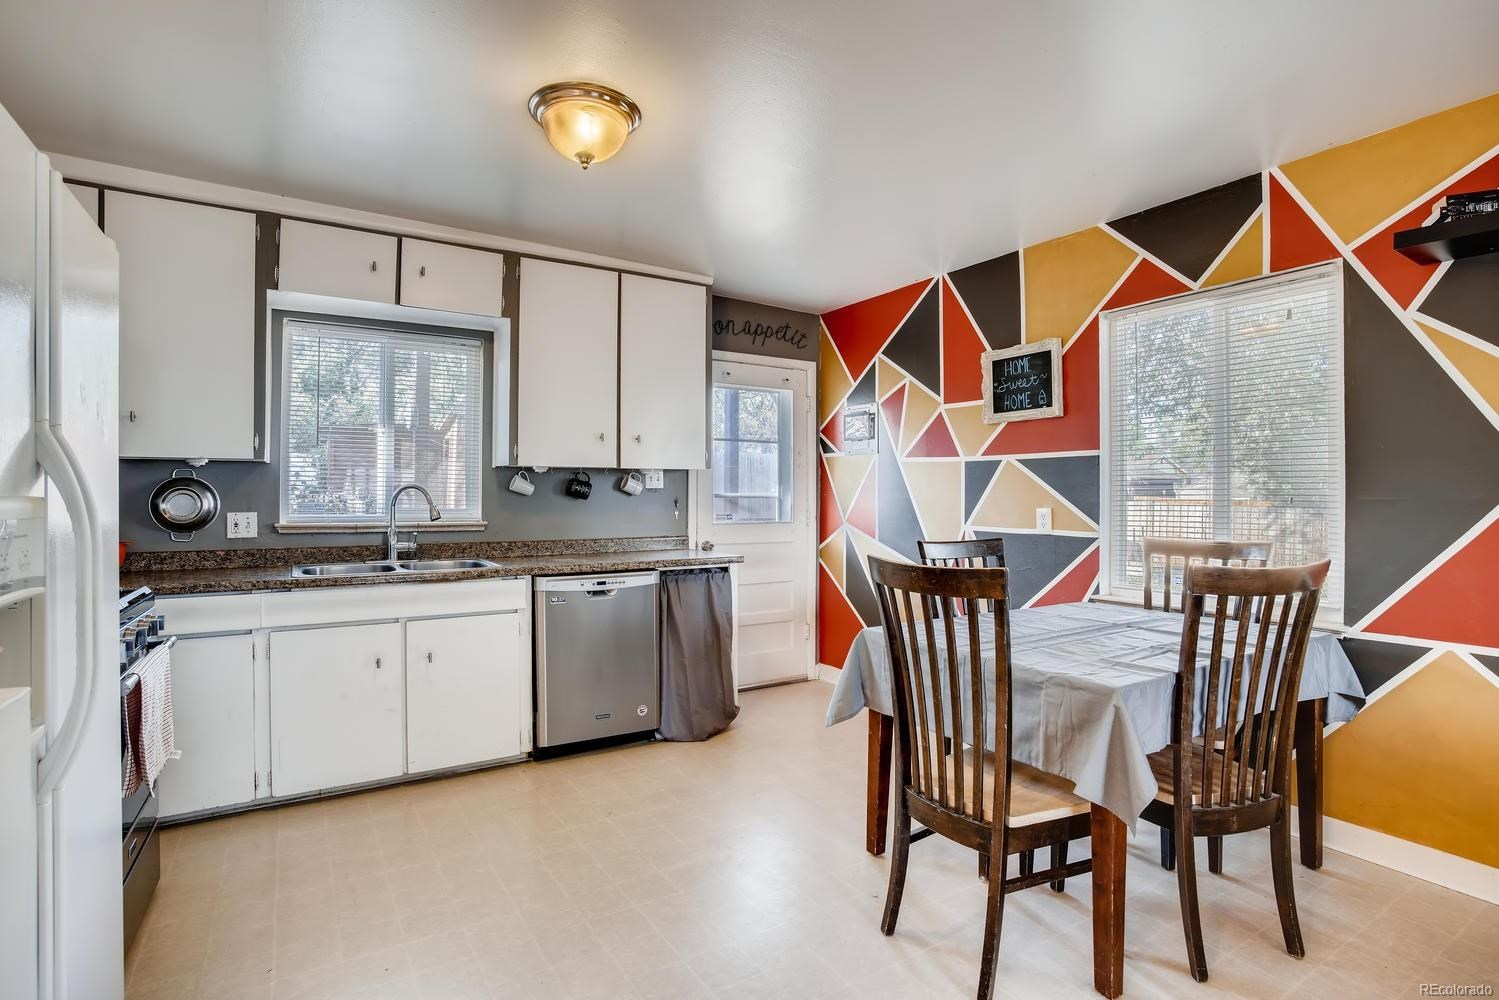 MLS# 3194522 - 10 - 4400 W Gill Place, Denver, CO 80219